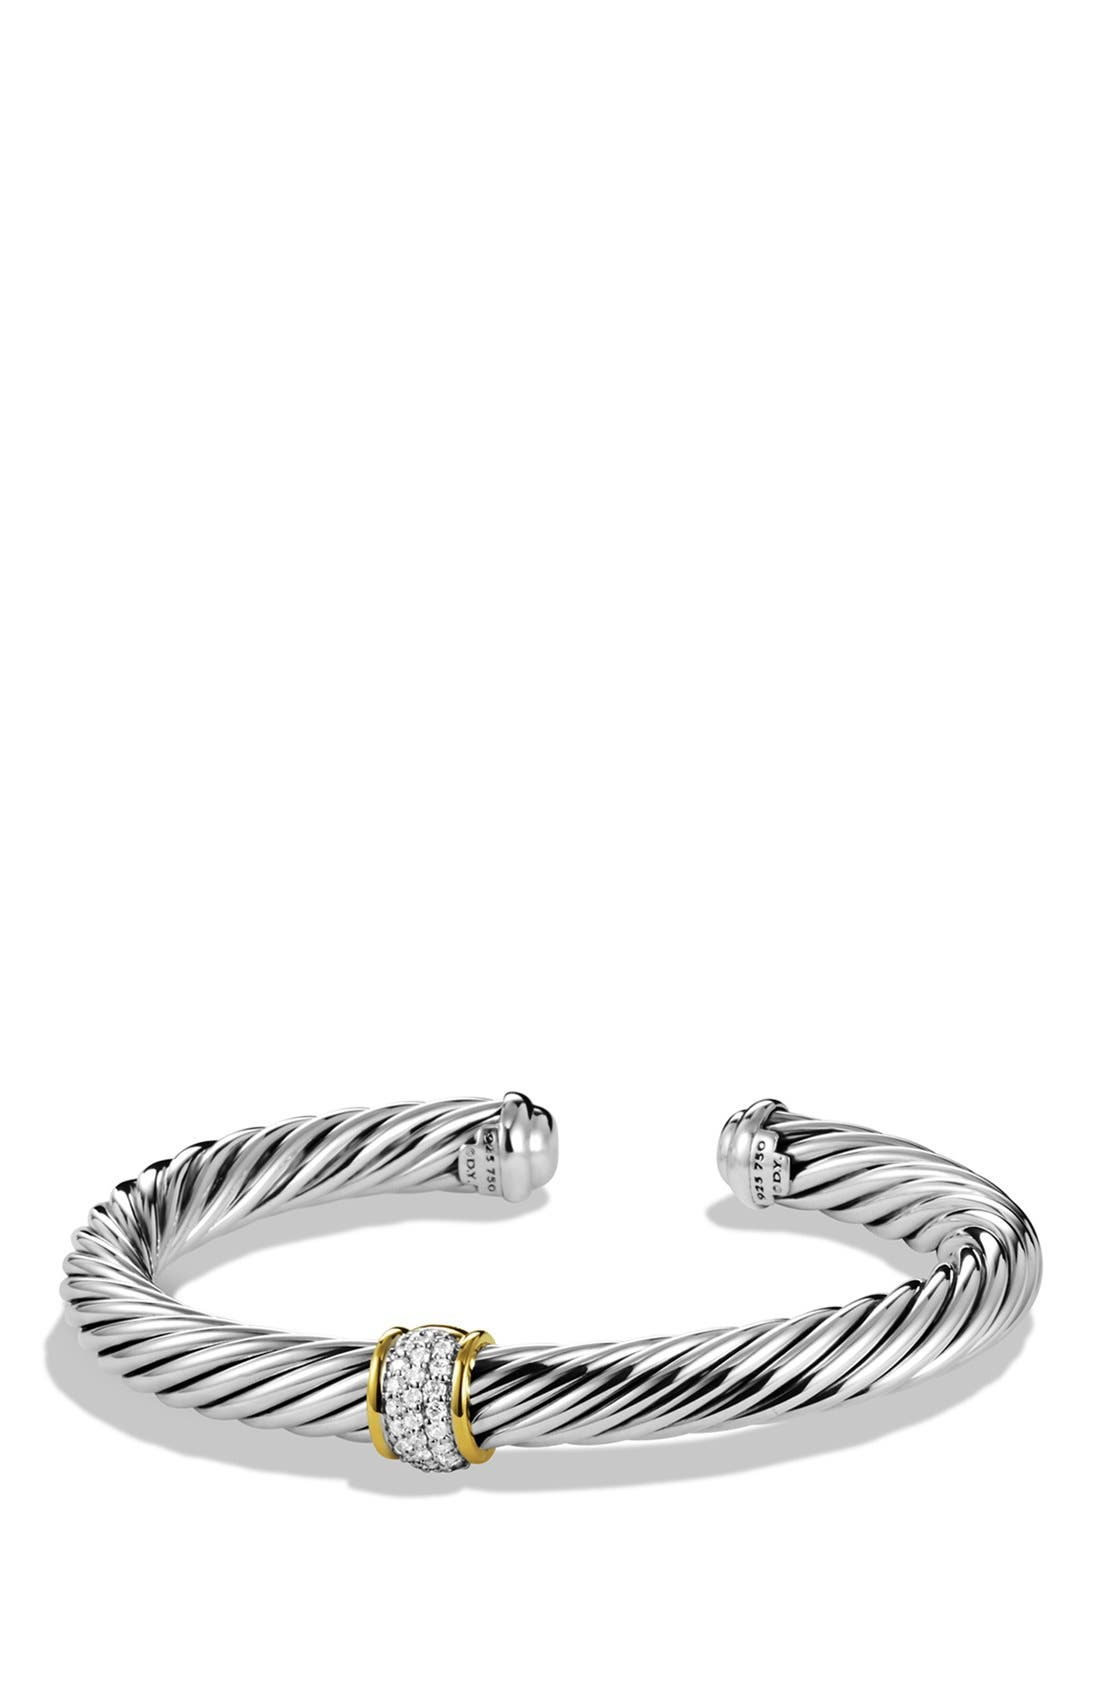 Alternate Image 1 Selected - David Yurman 'Cable Classics' Bracelet with Diamonds and Gold